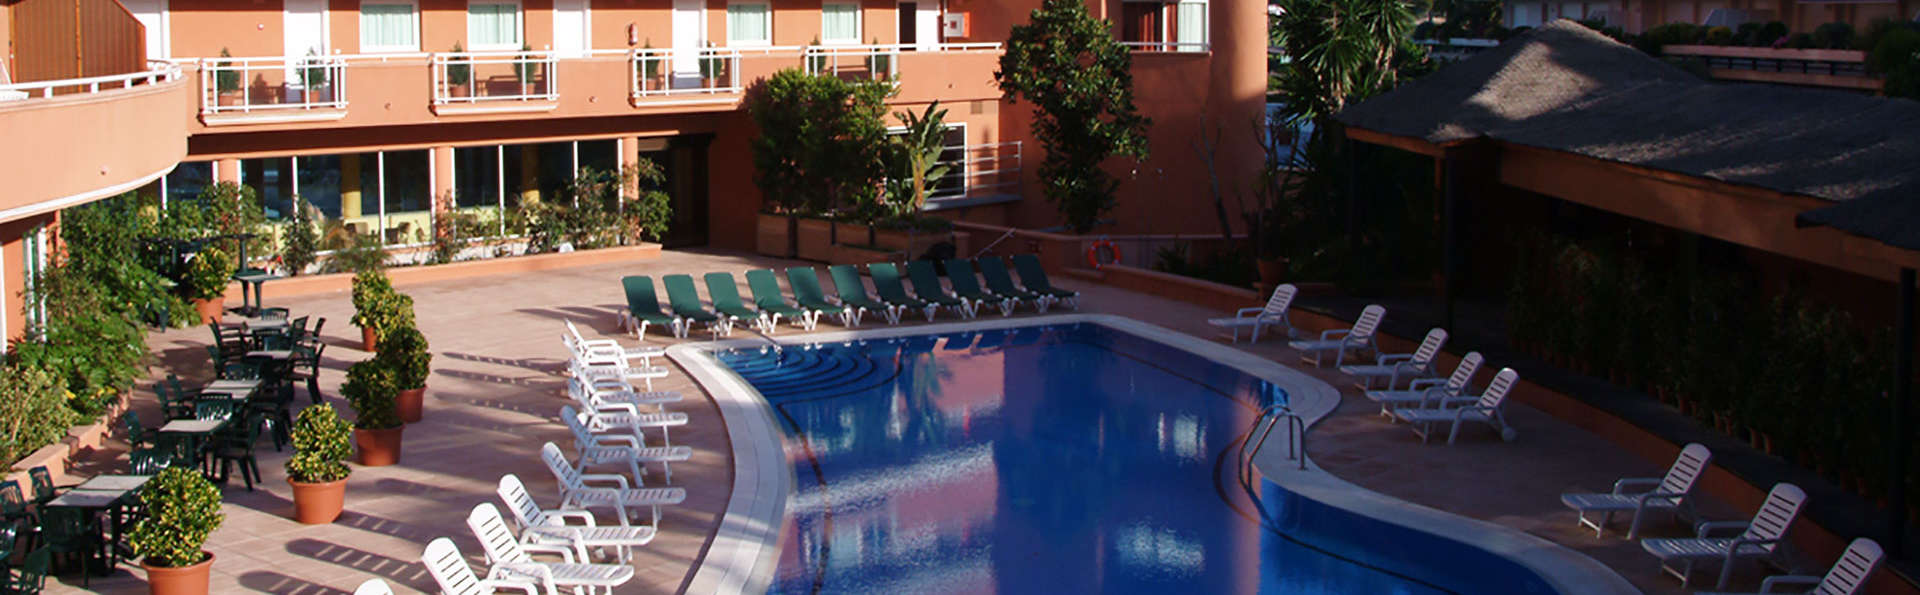 Hotel Sunway Playa Golf and Spa Sitges - EDIT_pool1.jpg